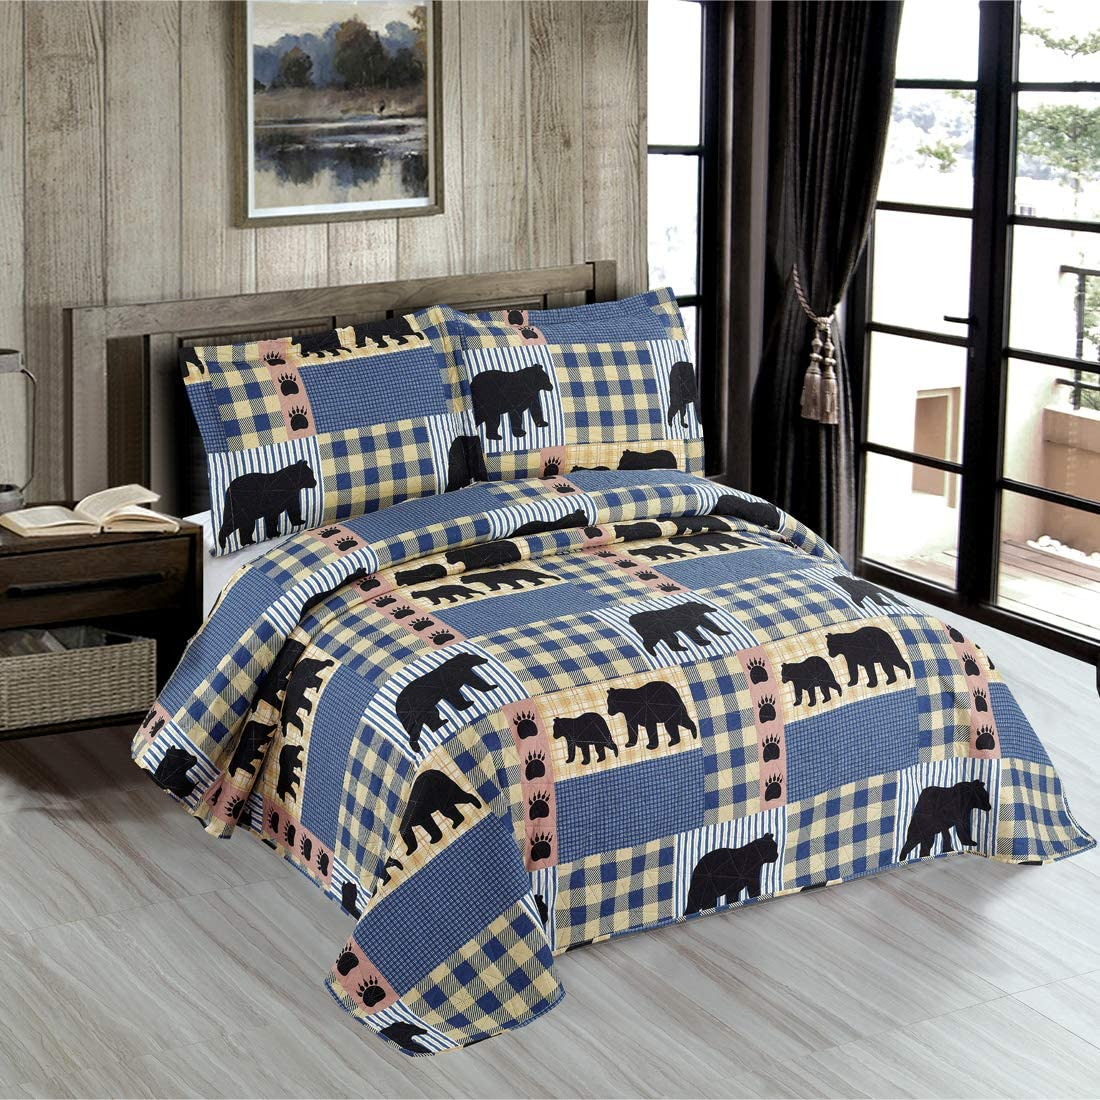 Oliven Lodge Bear Bedding Quilt King Size Blue White Plaid Bedspread Set Rustic Quilts Forest Bear Blanket Cabin Coverlet Summer Lightweight Bear Daybed Cover Woodland Home Decor